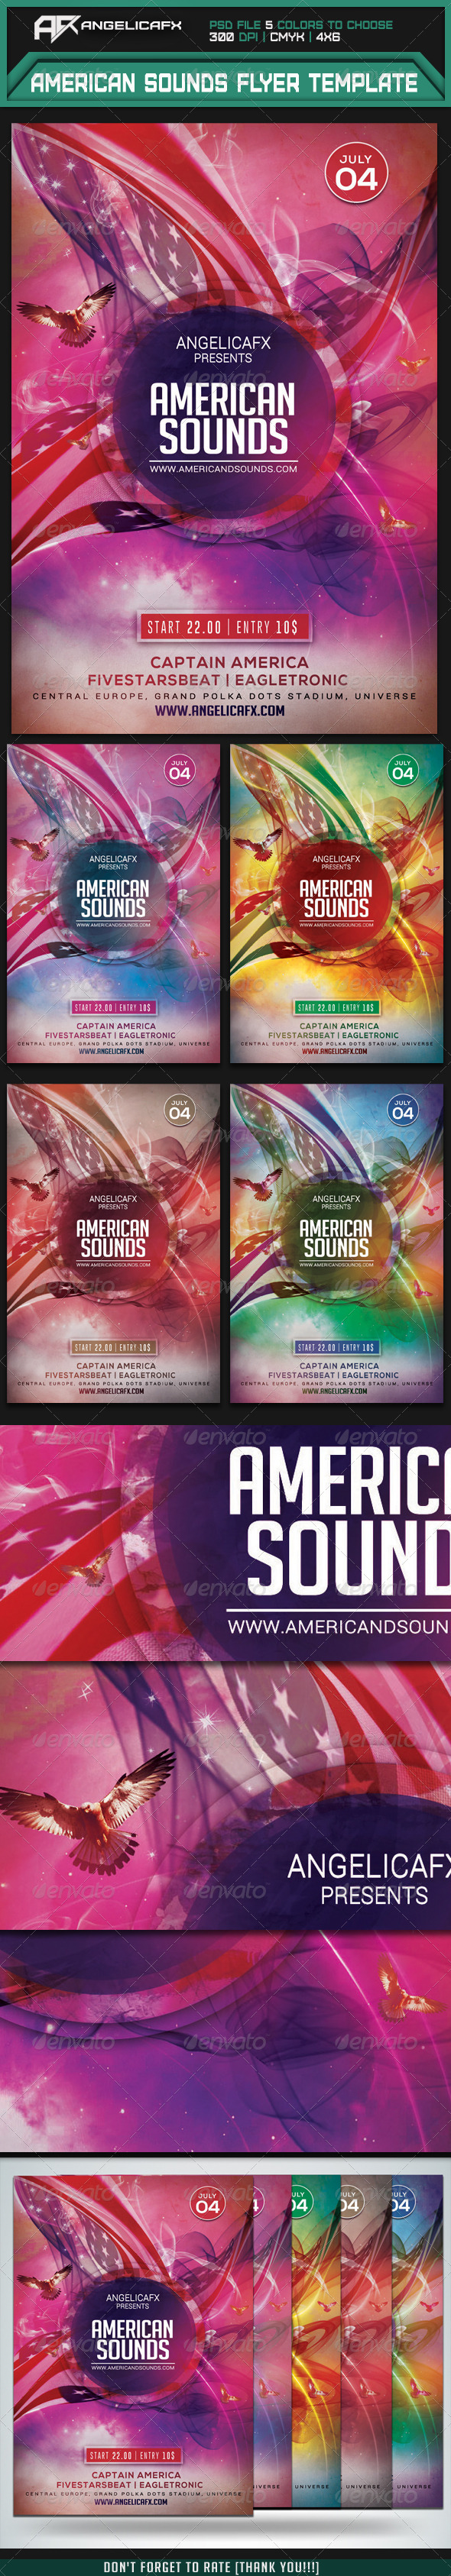 American Sounds Flyer Template